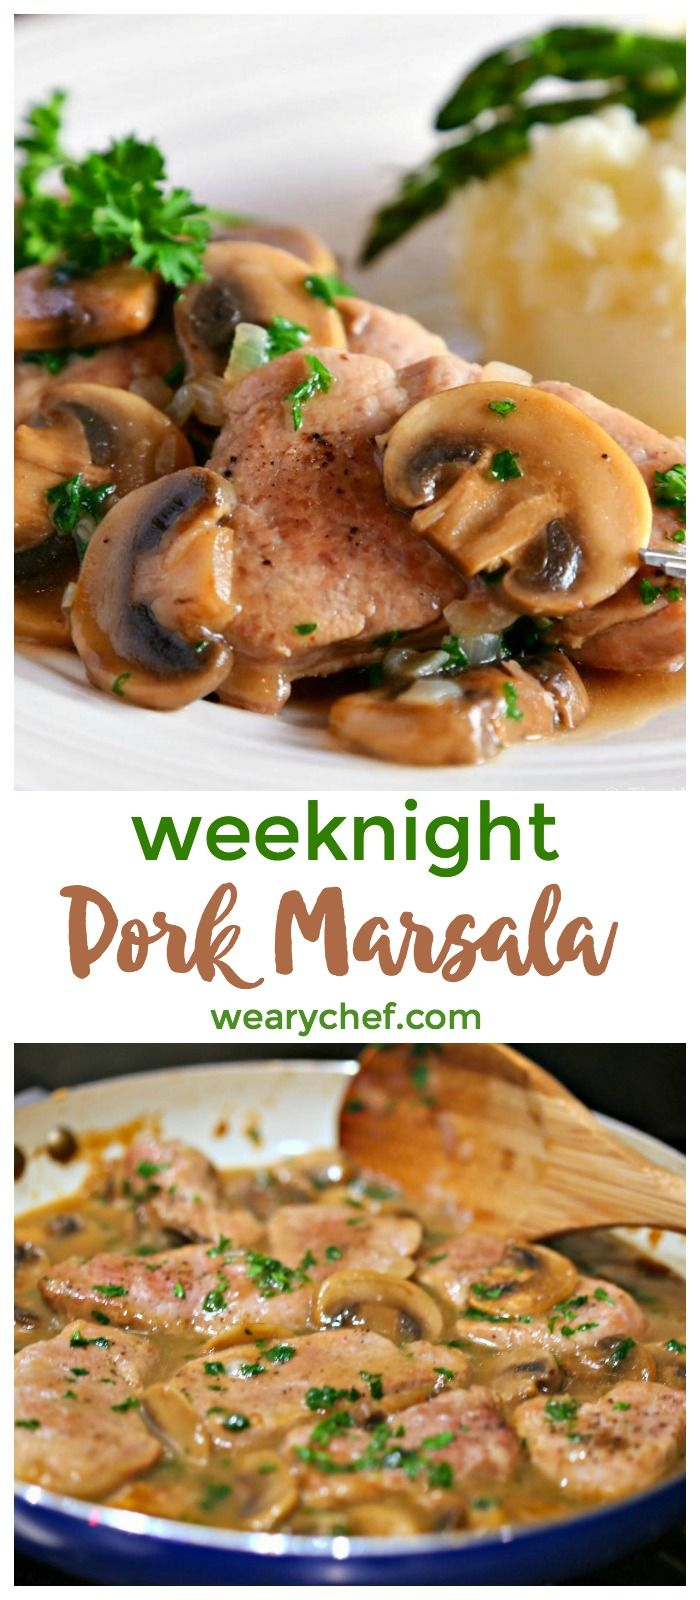 Easy Pork Marsala is quick to prepare with sliced pork tenderloin, mushrooms, cooking wine, and a few other common ingredients. It's an easy dinner recipe that is perfect for busy weeknights or fancy enough for guests!